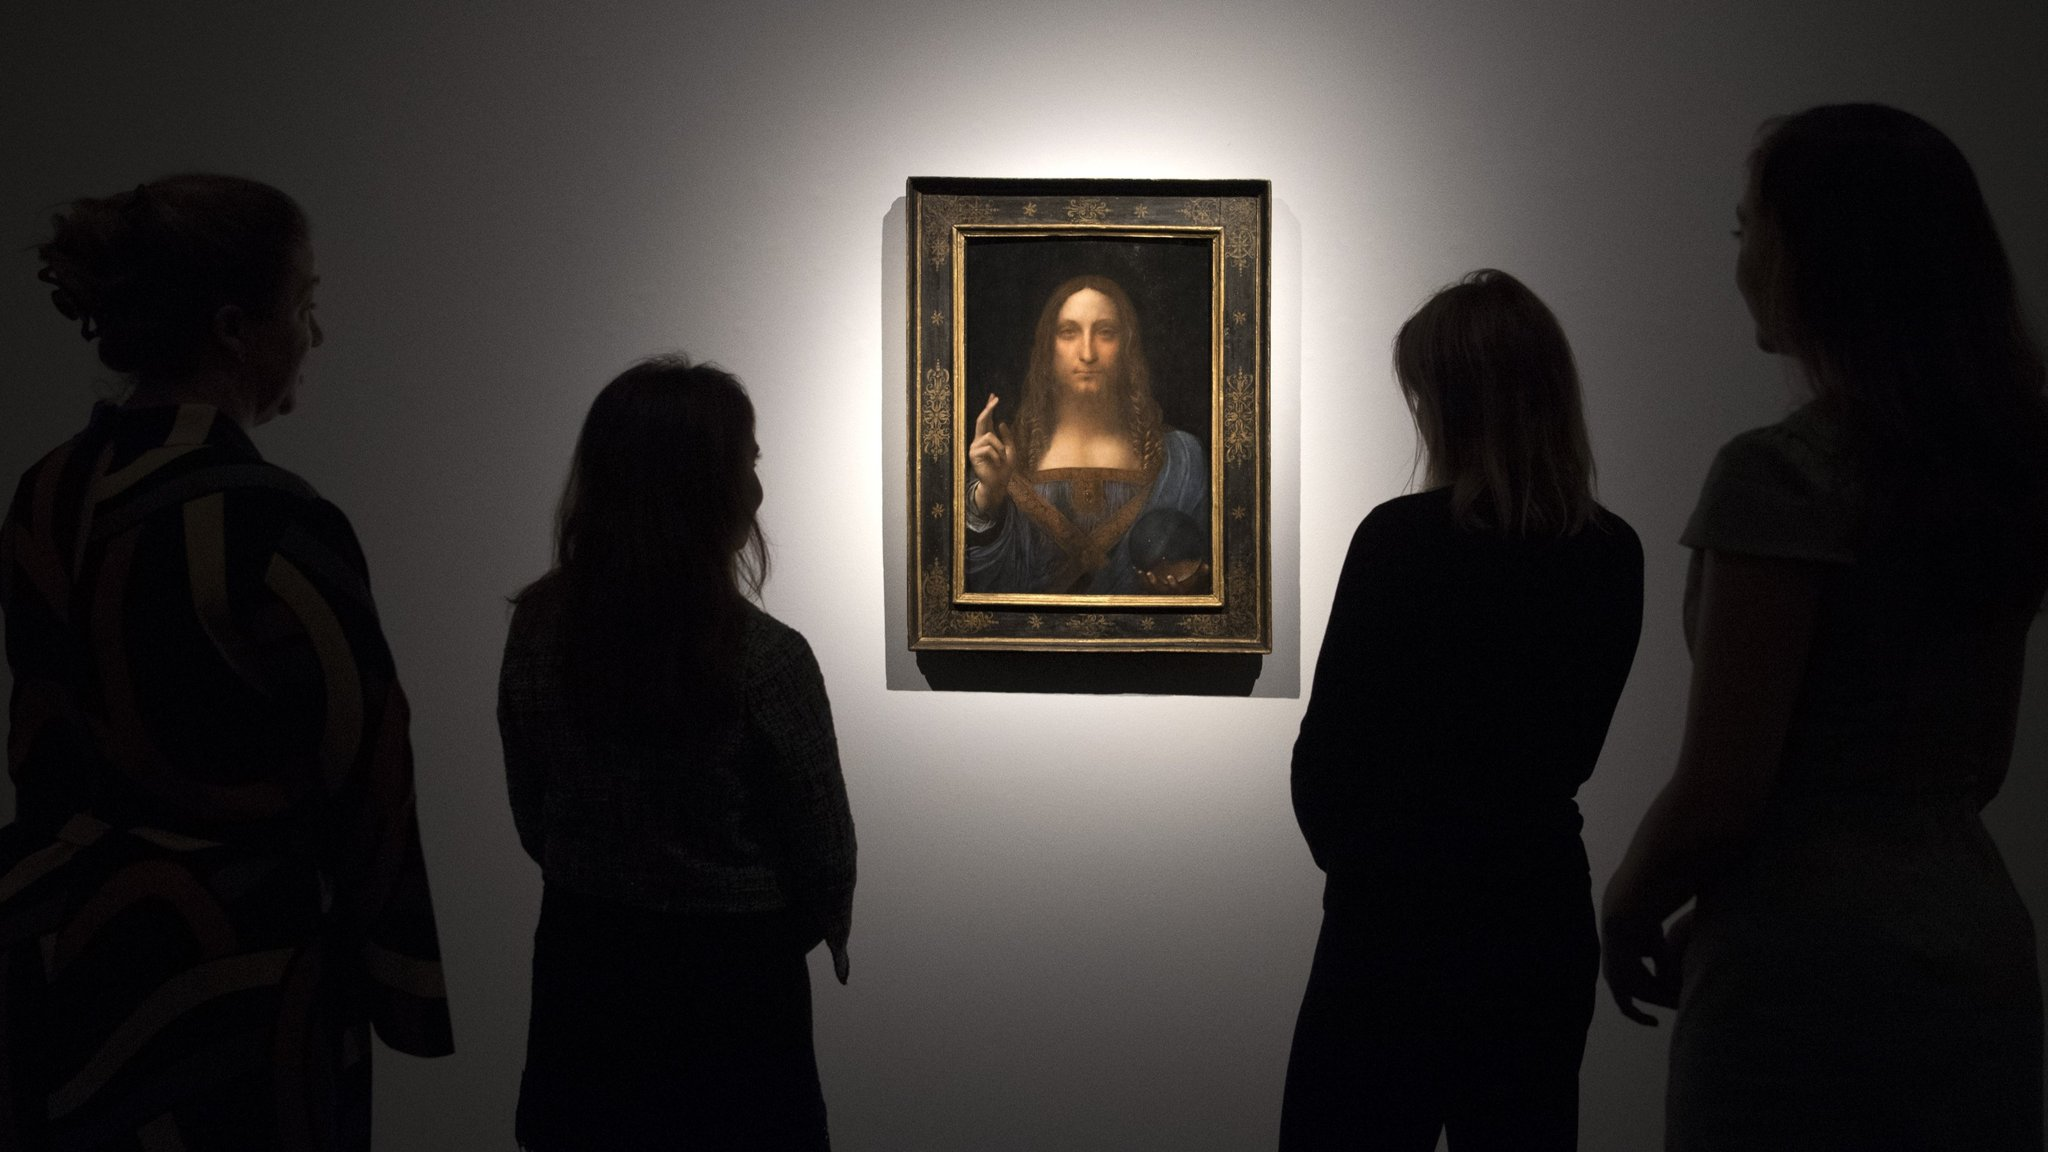 'Salvator Mundi' and the limits of certainty